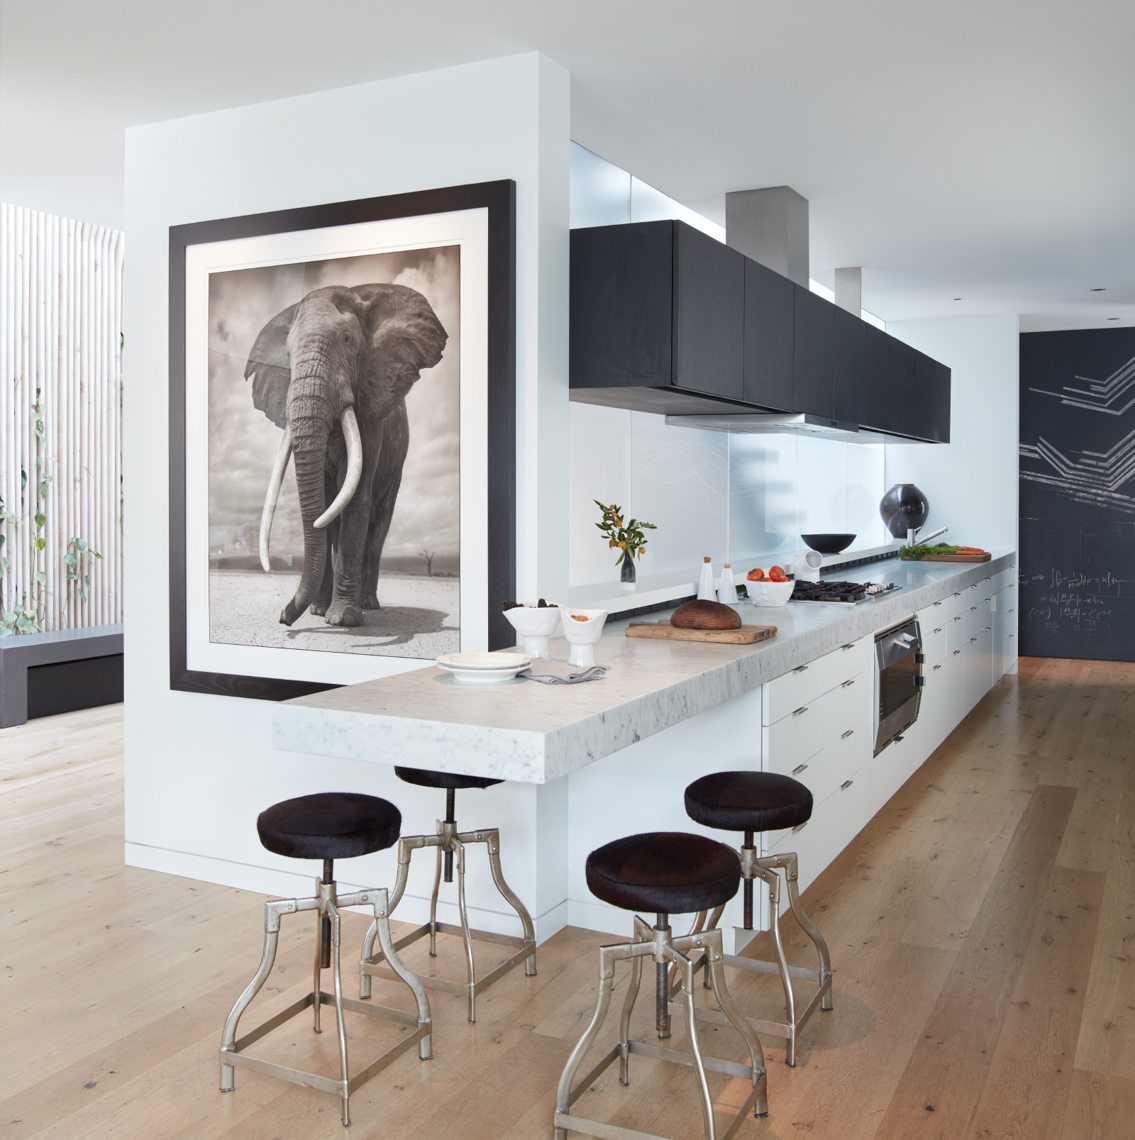 modern home kitchen interior seating area with black stools and white marble countertop  San Francisco interior photographer